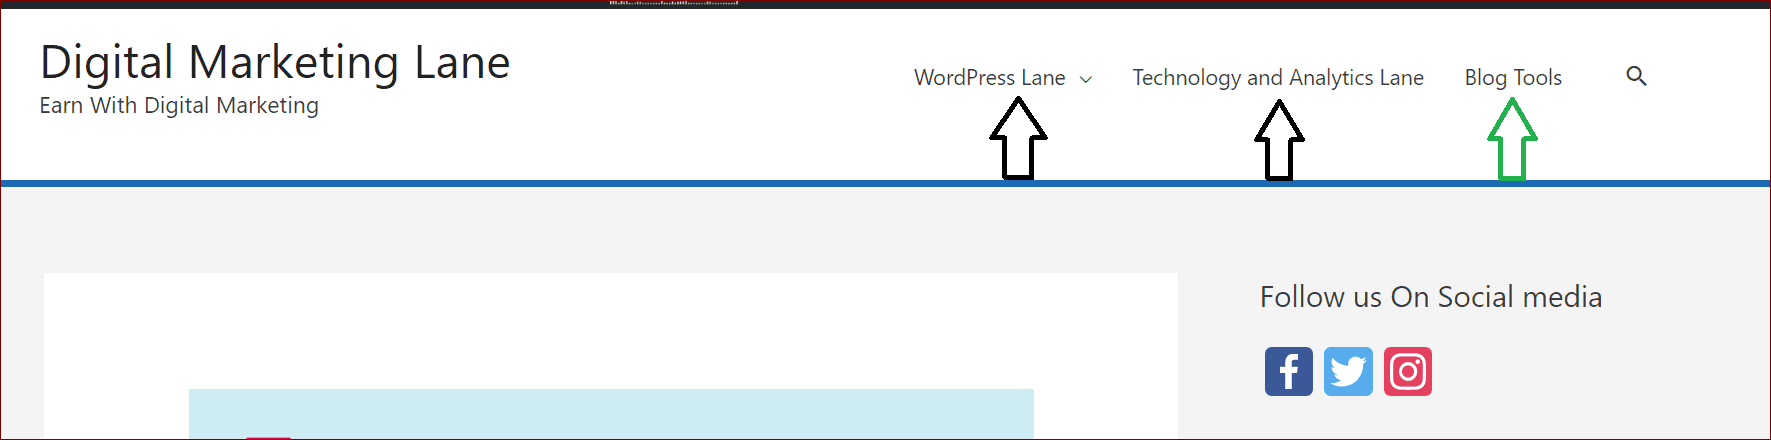 Posts vs Page in WordPress